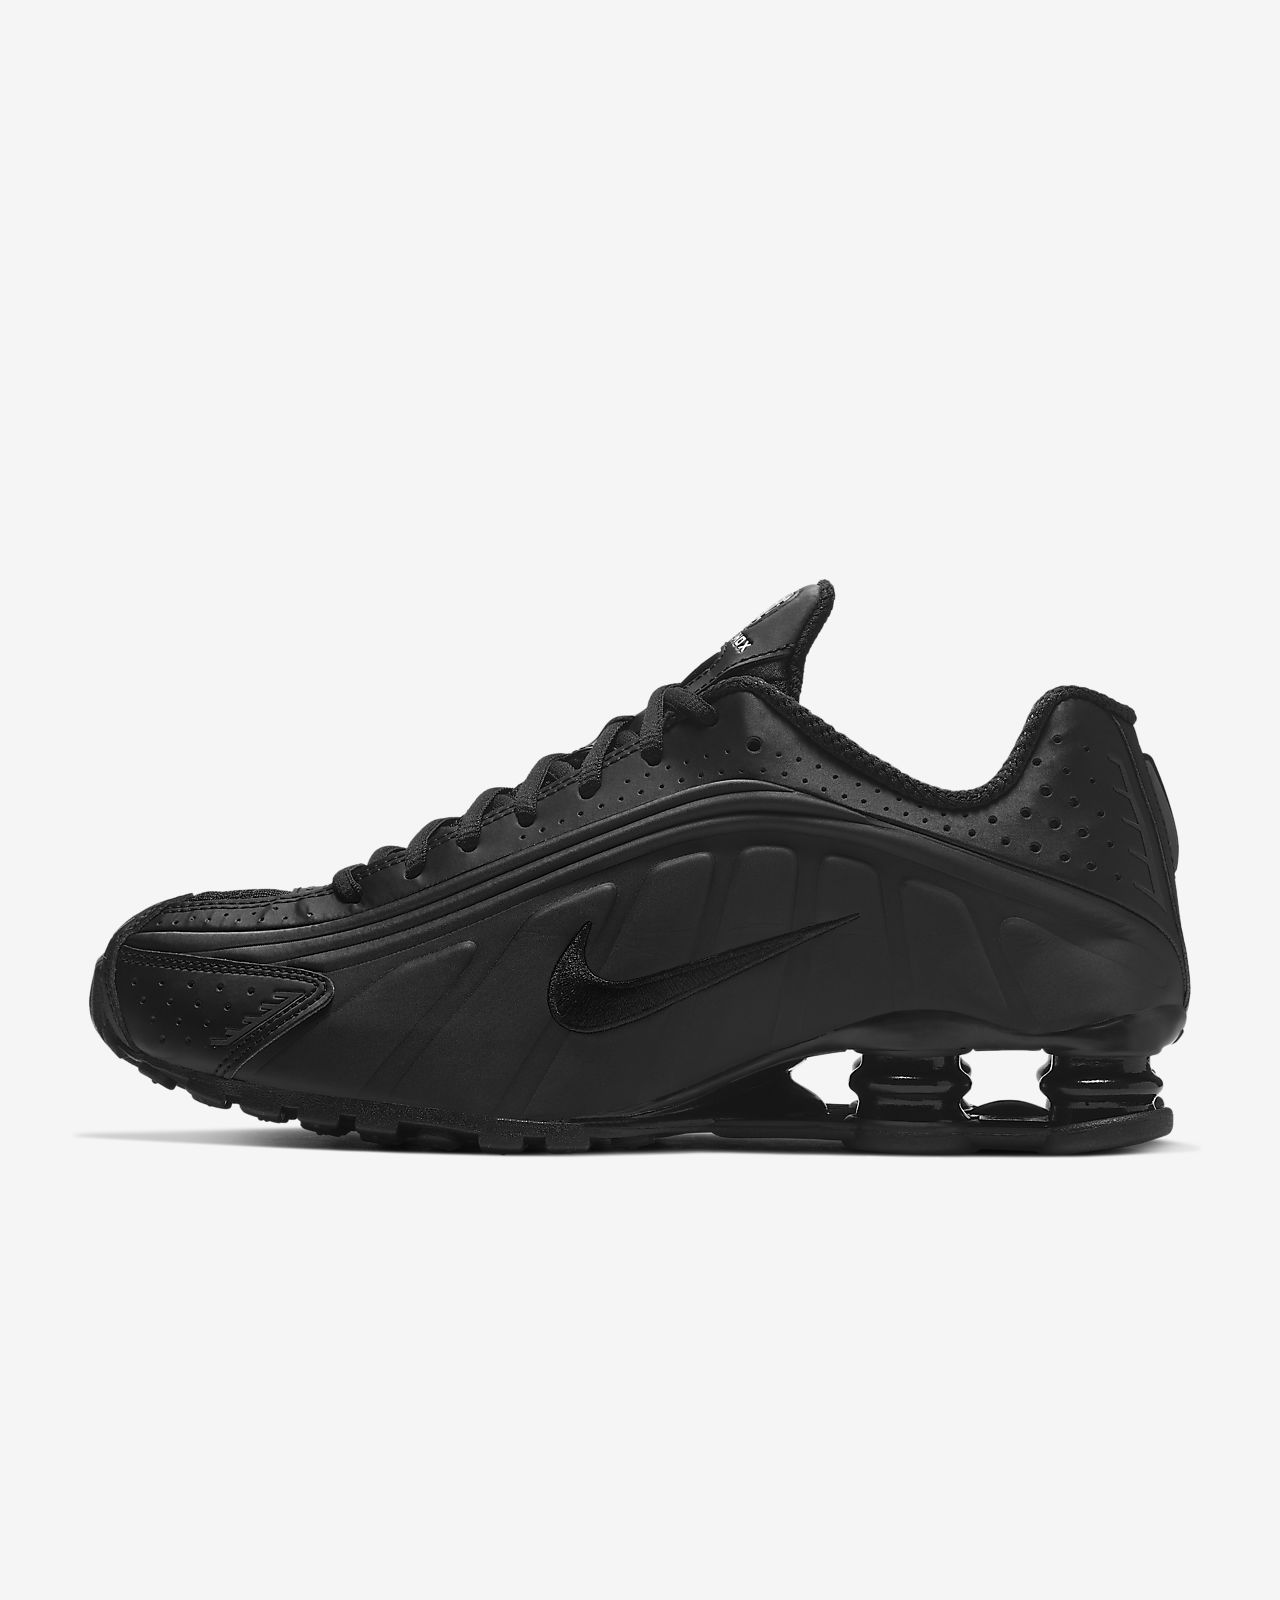 super popular d9b2d 99666 Nike Shox R4 Men's Shoe. Nike.com